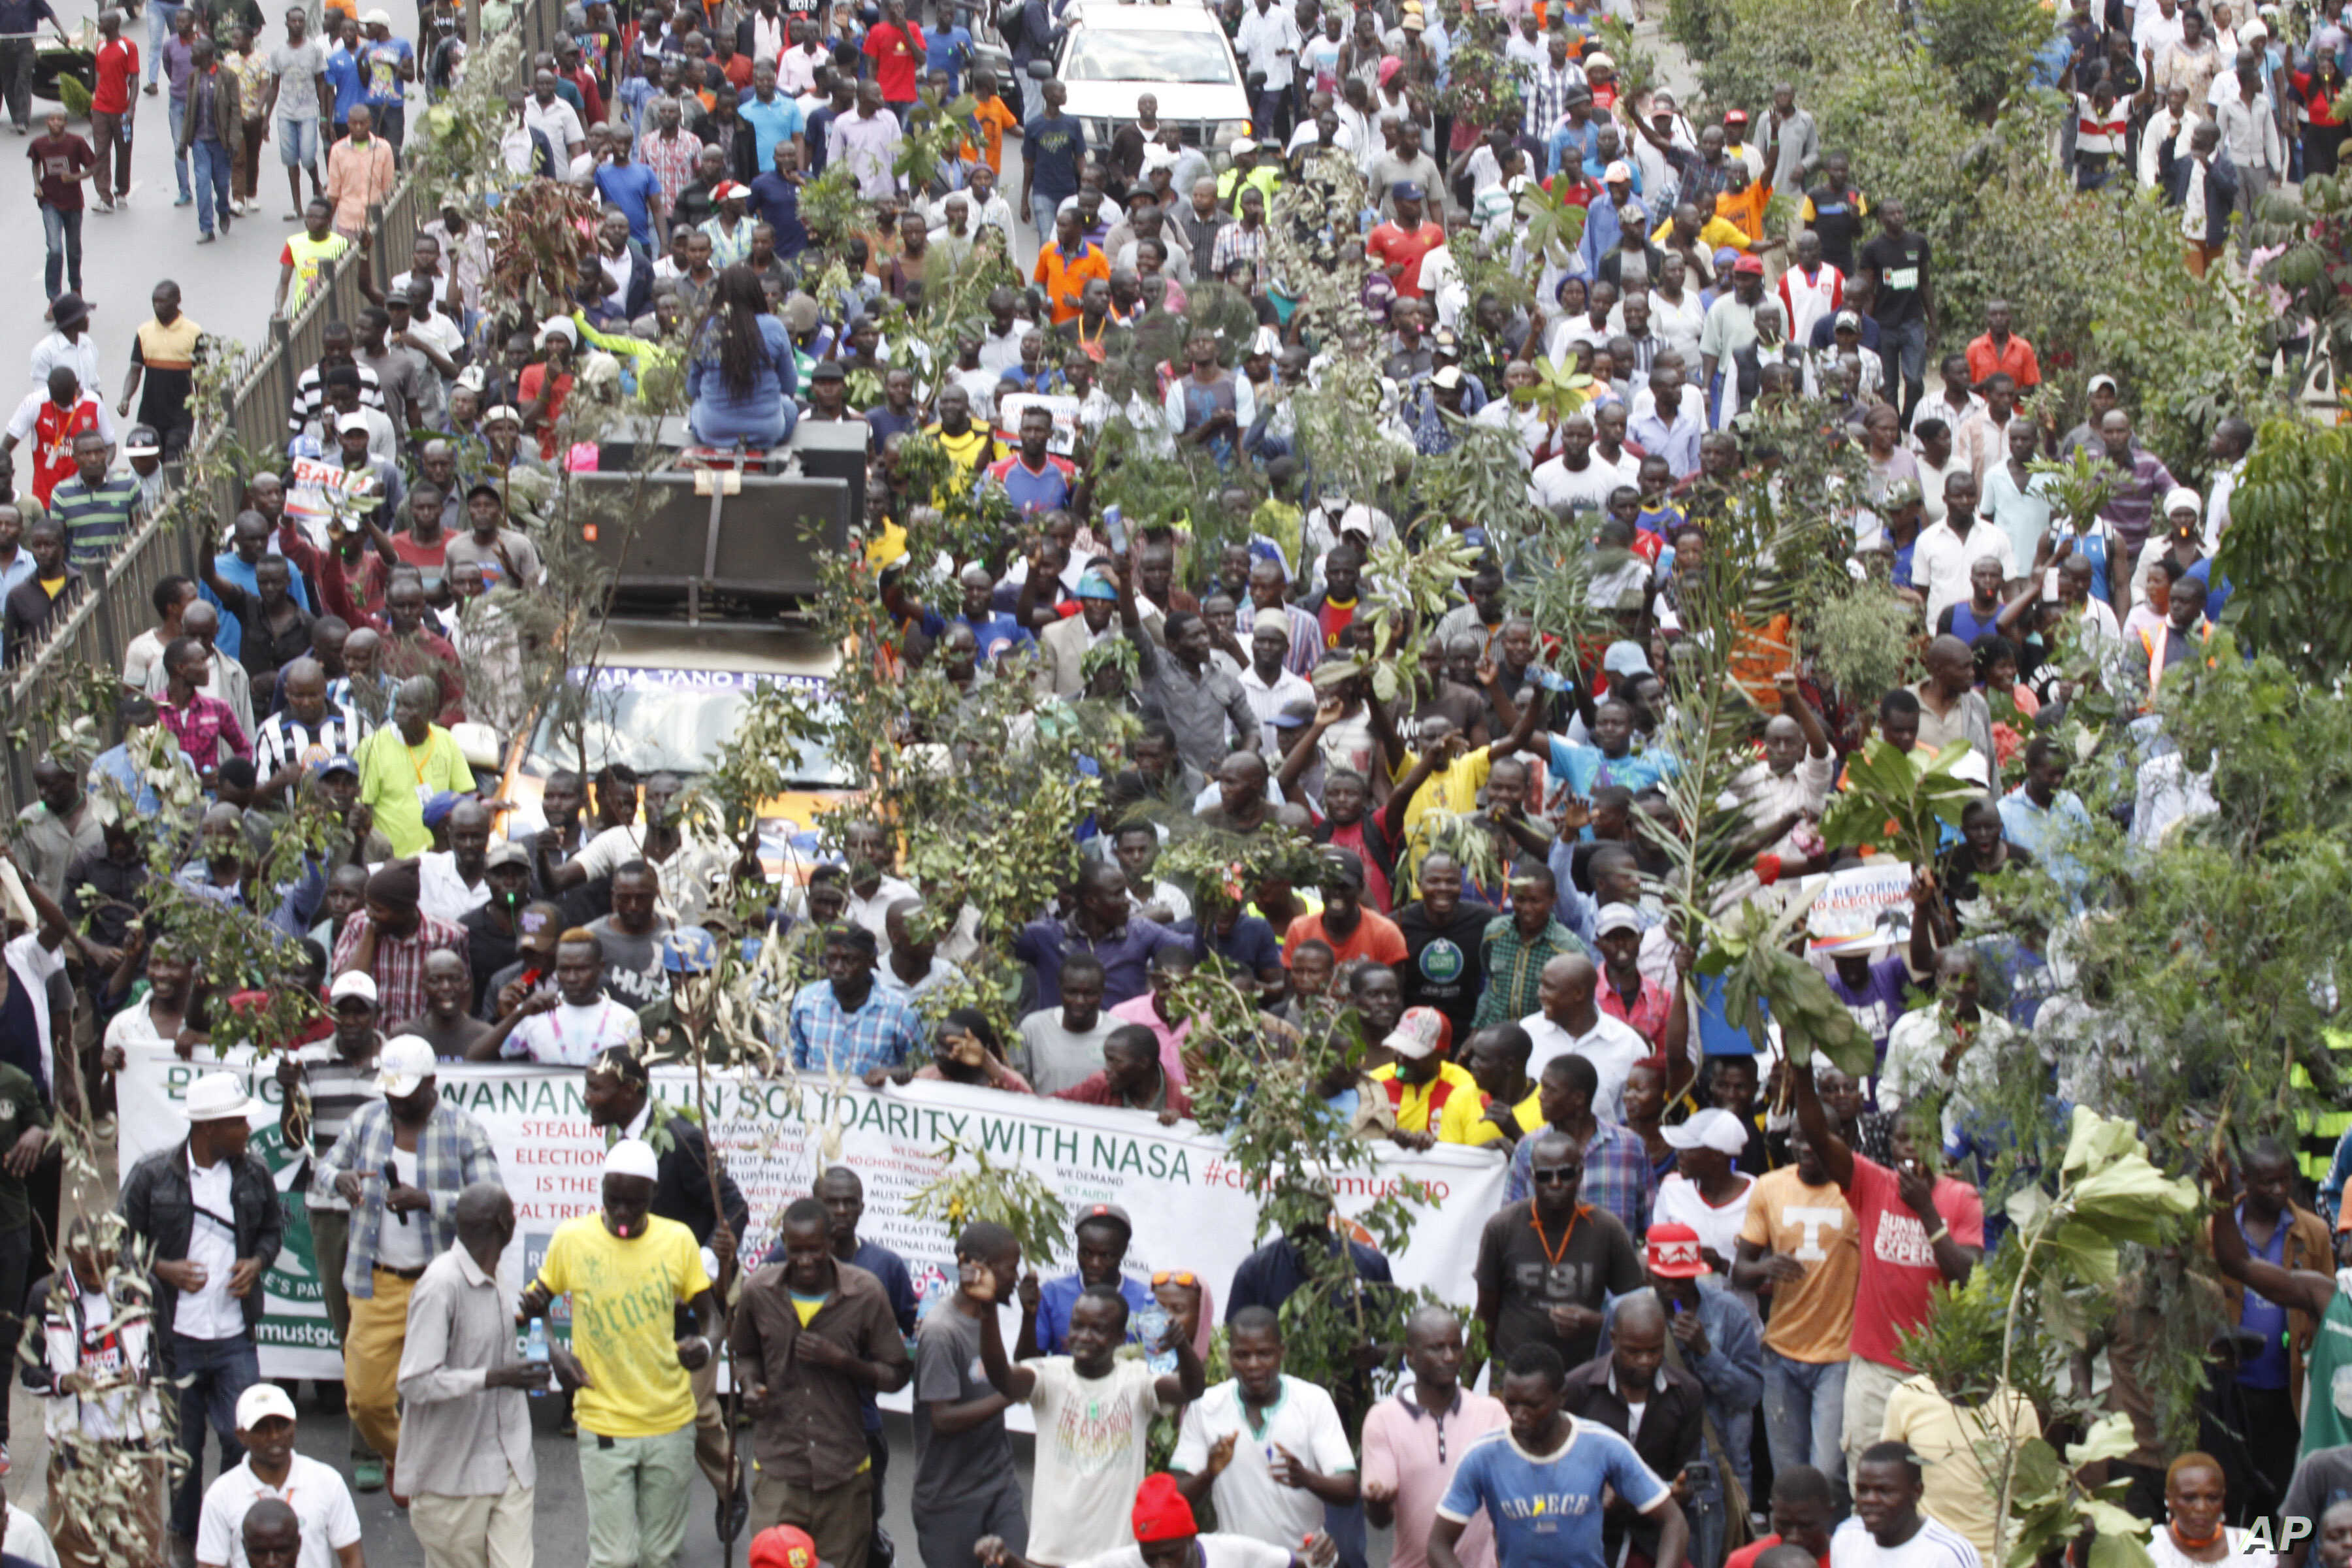 Opposition Supporters demonstrate against the Independent Electoral and Boundaries Commission (IEBC) in Nairobi, Kenya, Wednesday, Oct. 11, 2017.